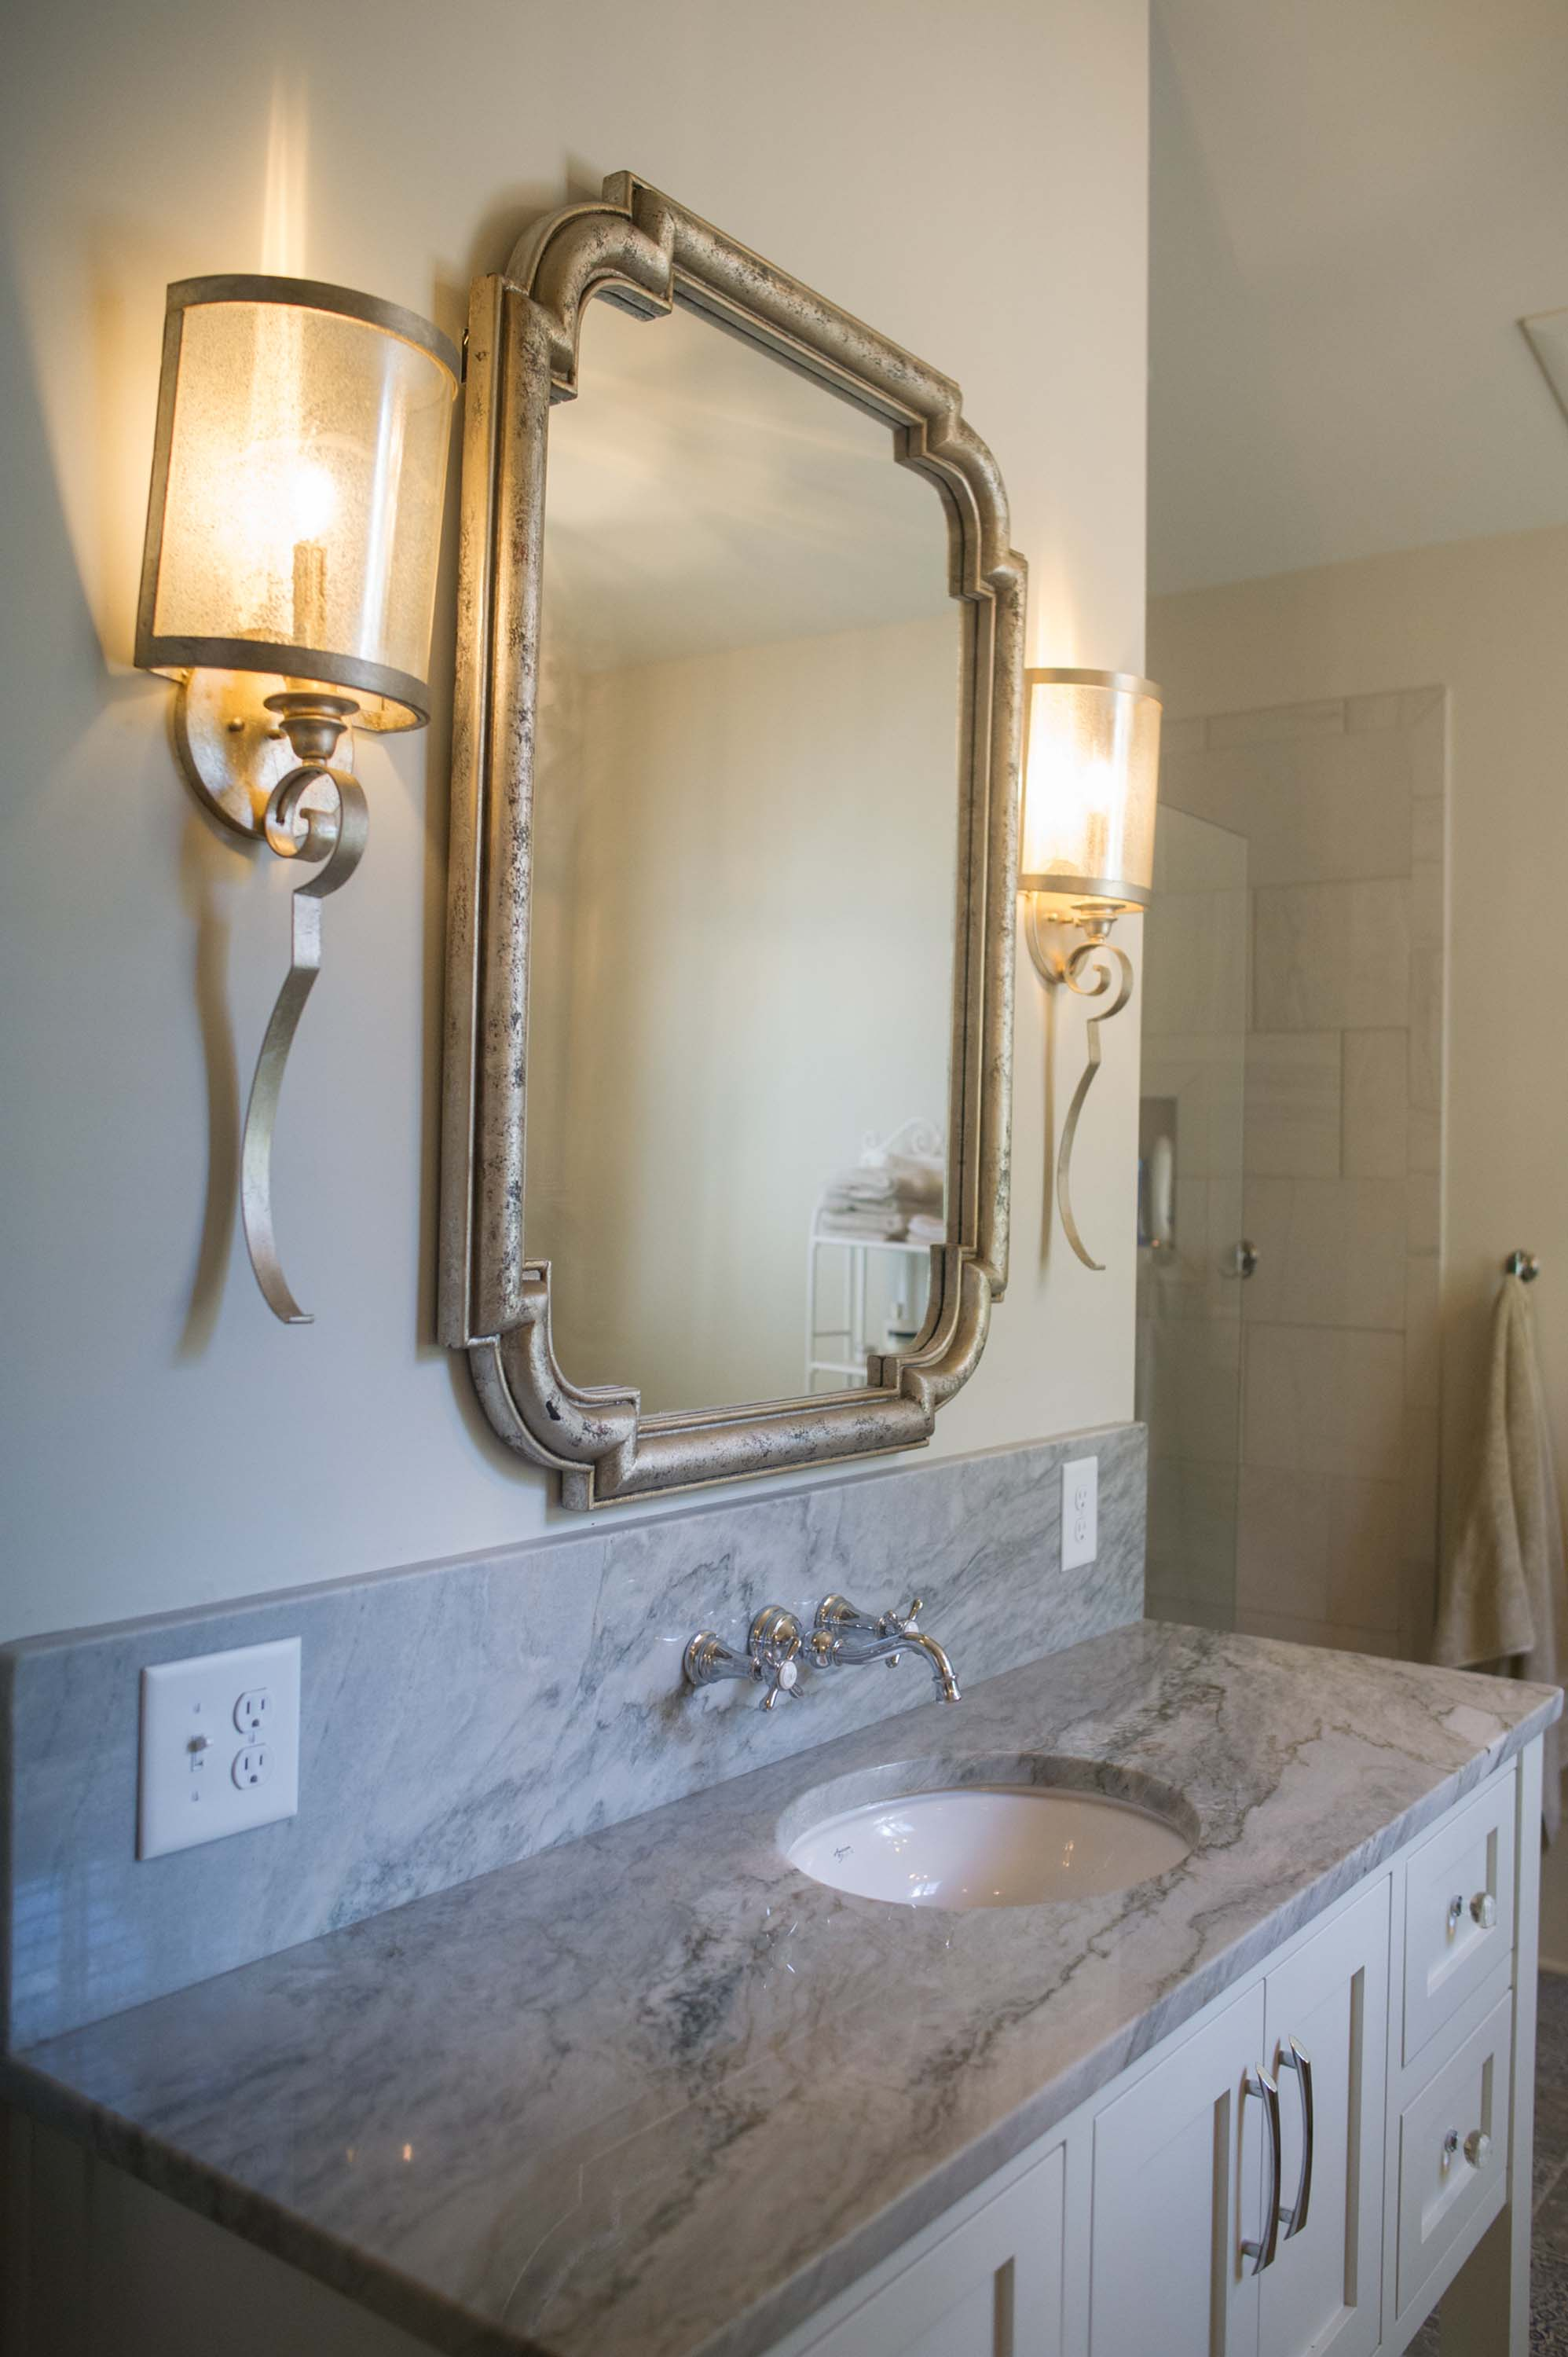 Bathroom with sink, ceramic countertop  and vintage style mirror